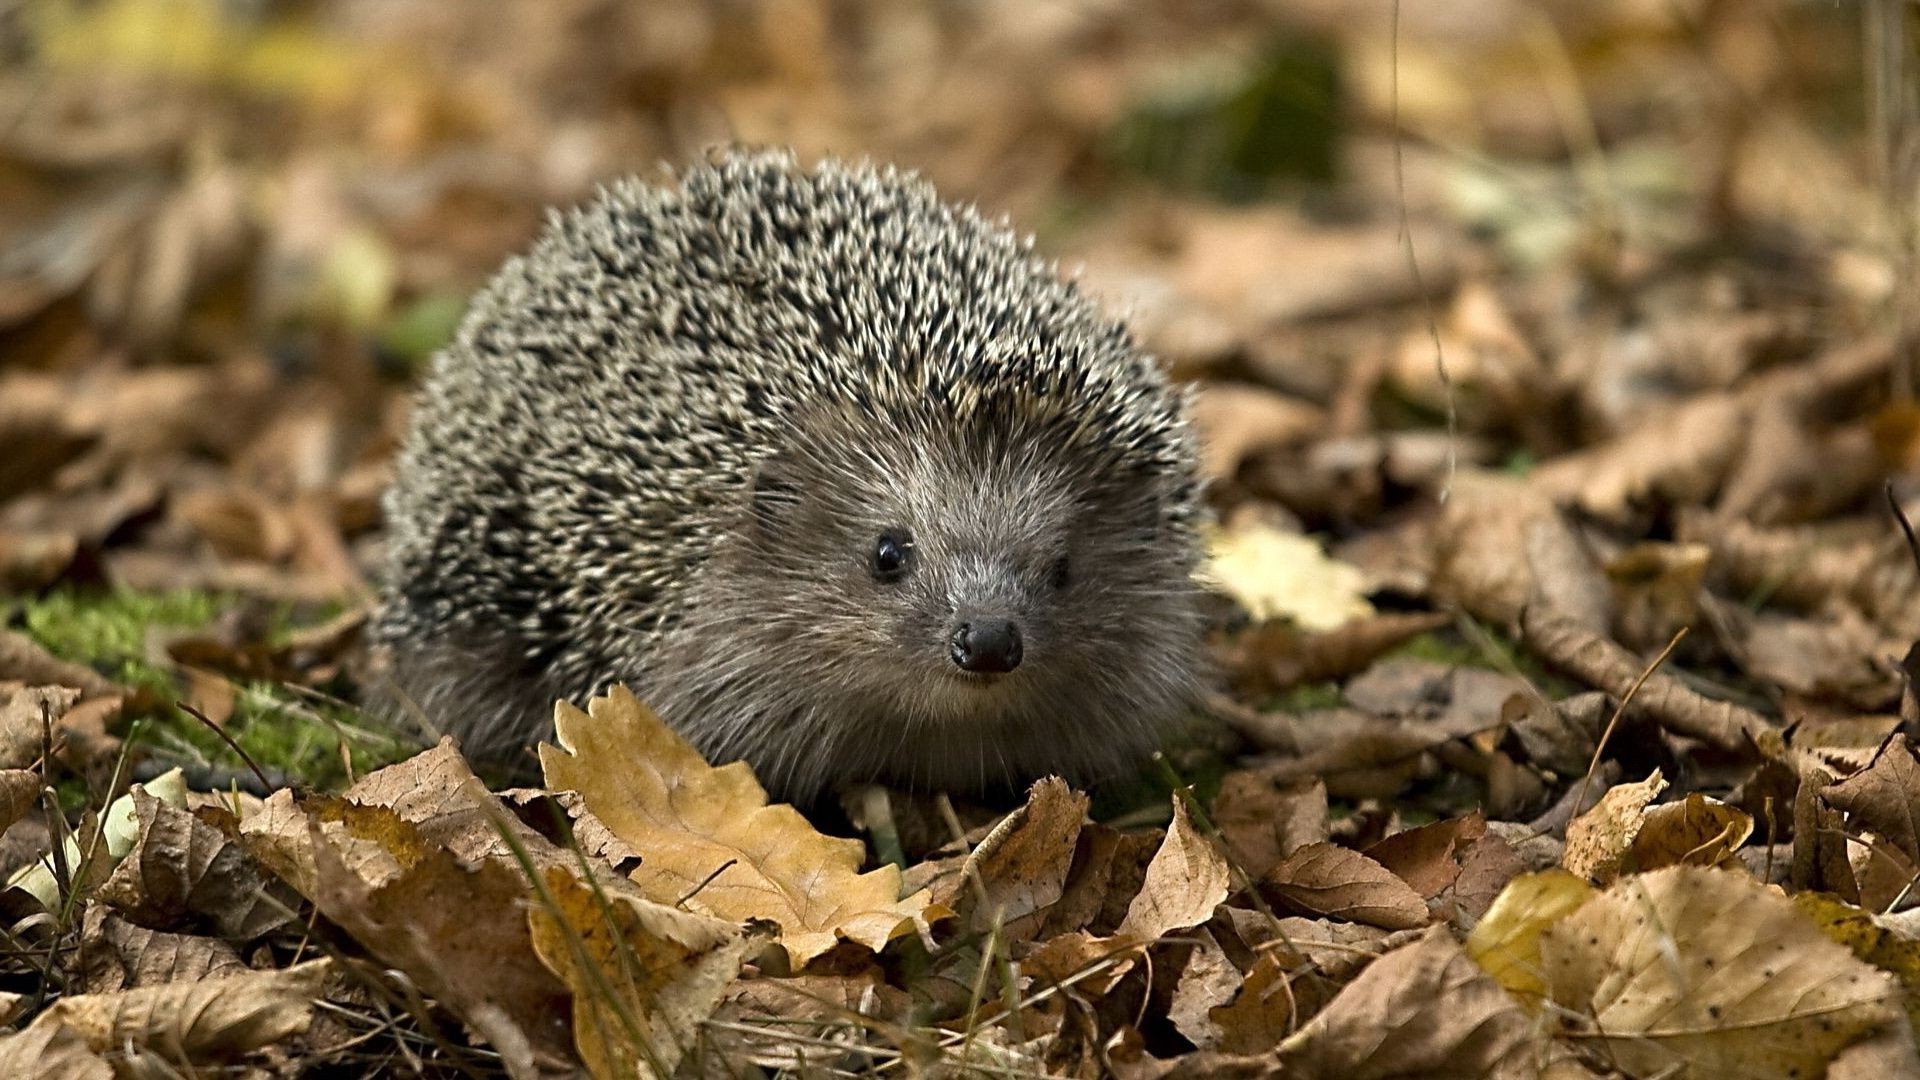 hedgehog hedgehog nature autumn leaves